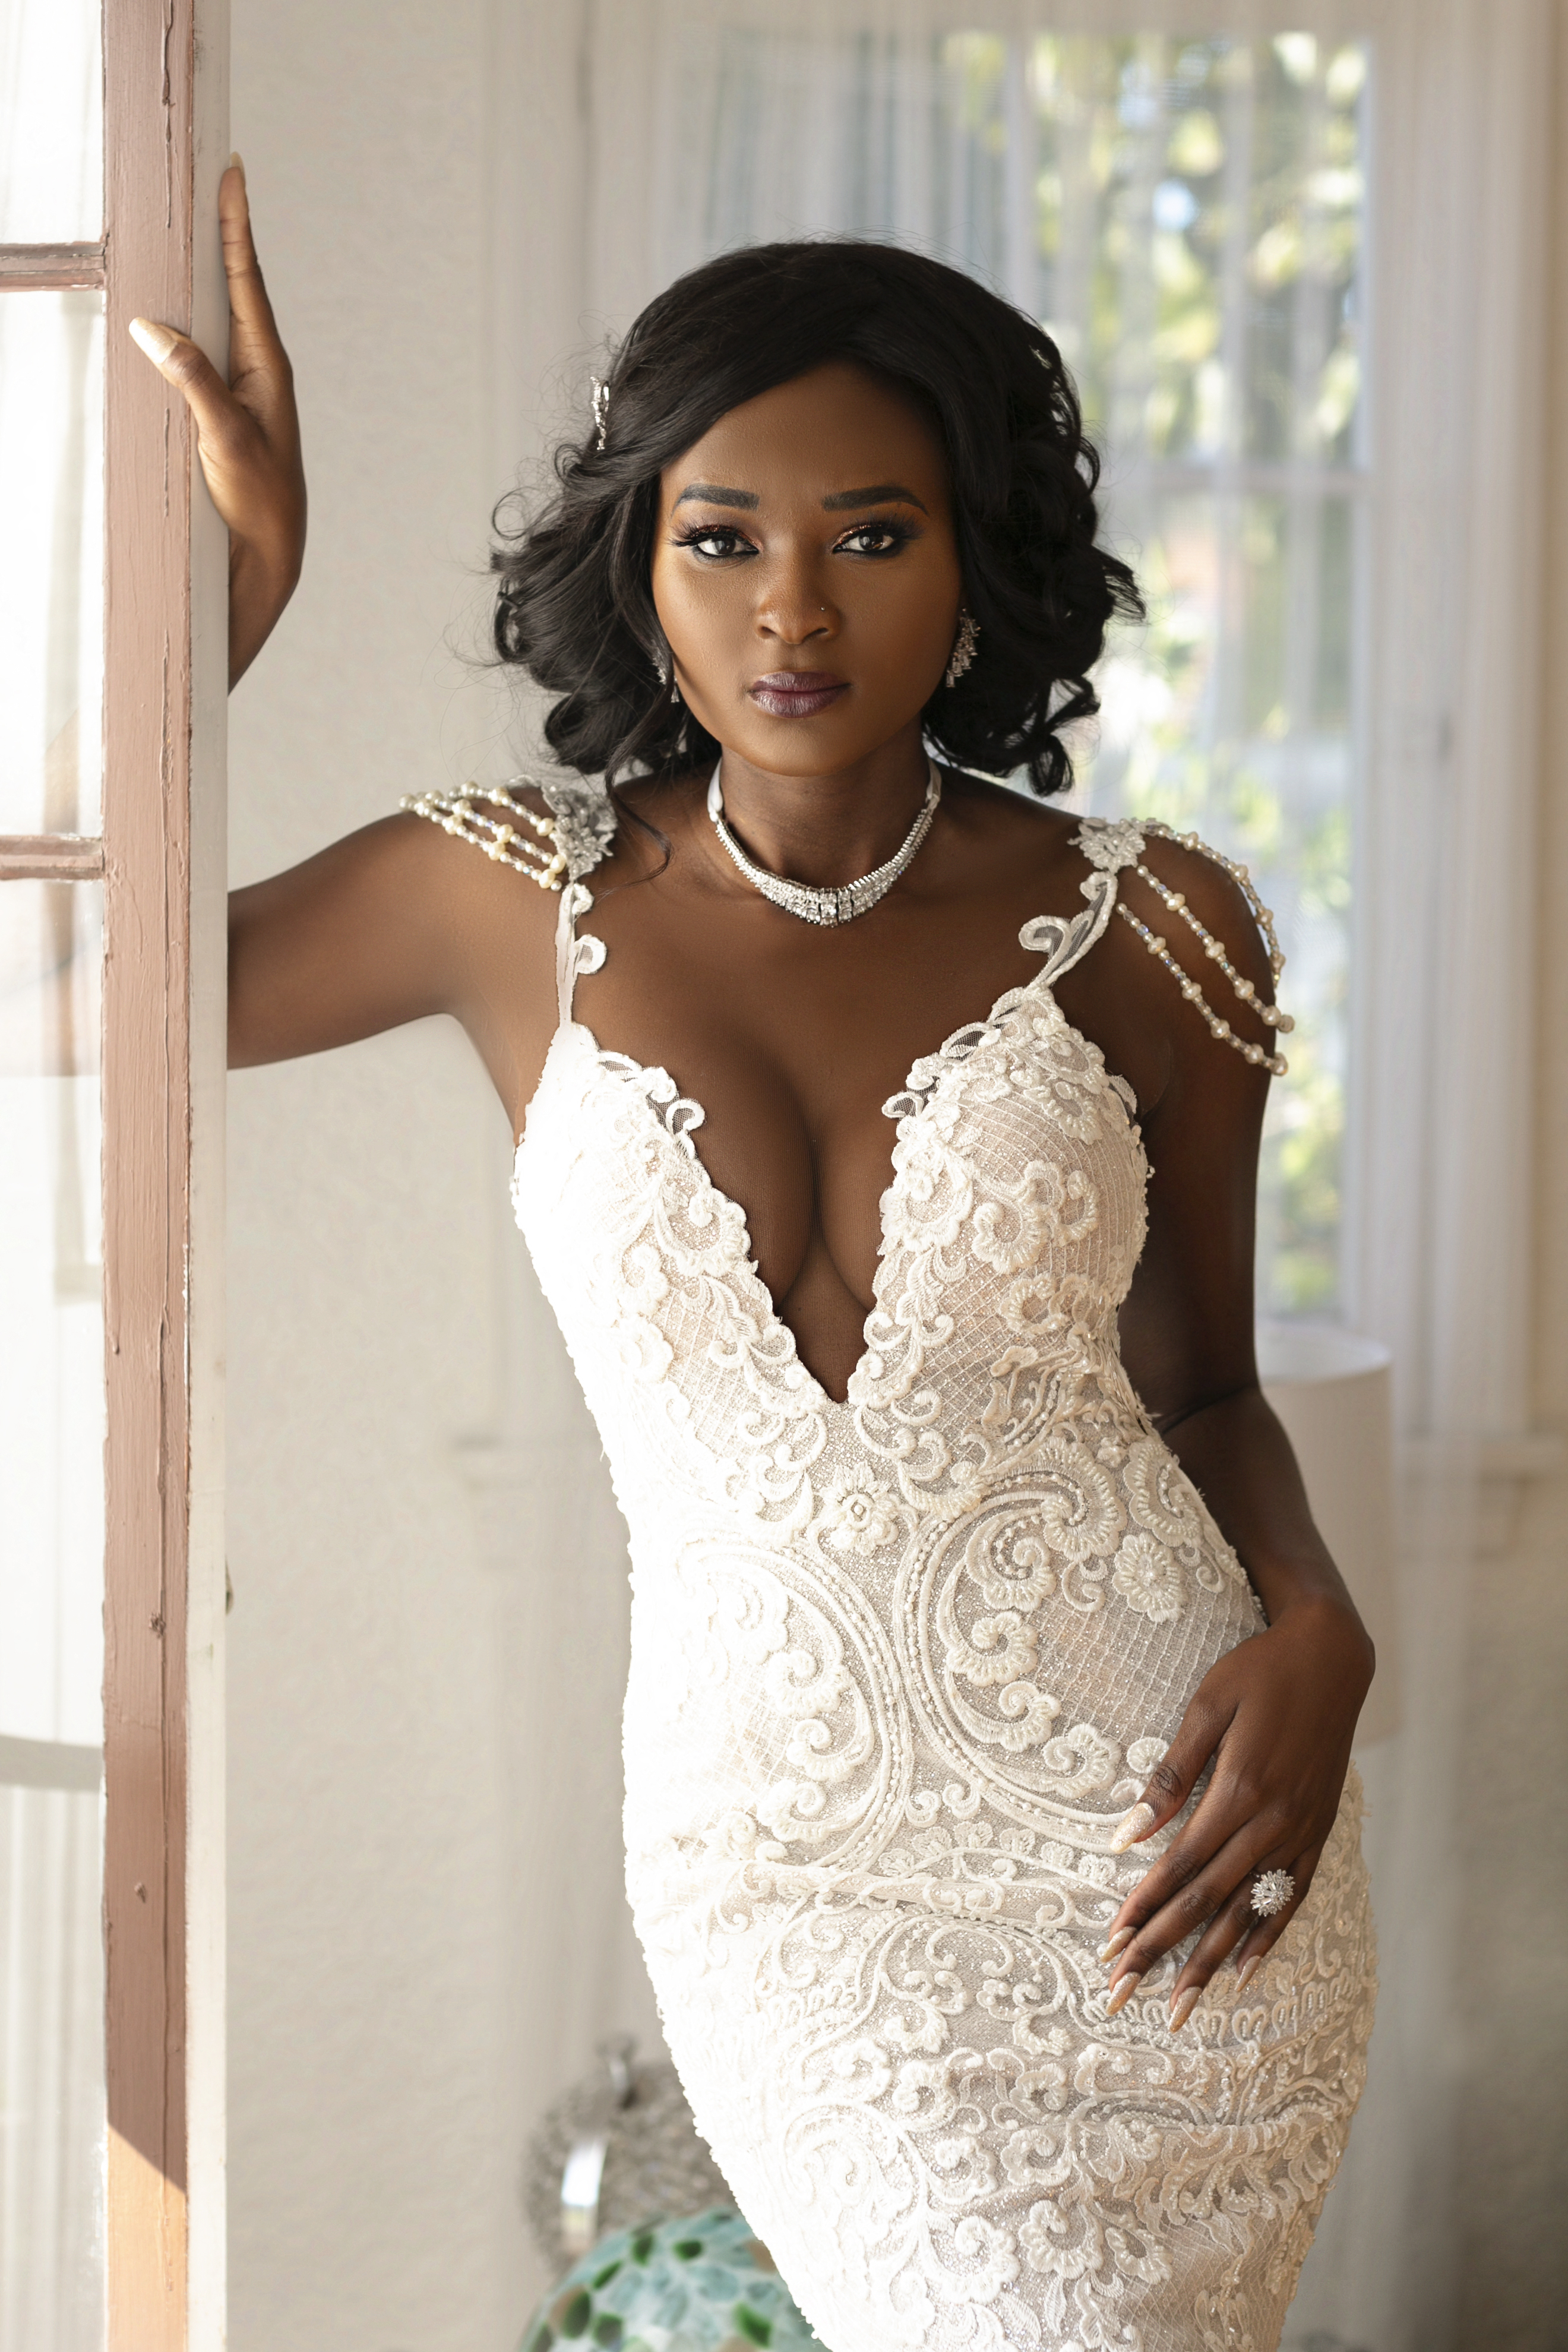 Fierce Lady Collection Luxe Devine by Naama & Anat Couture - The Blushing Bride Boutique in Frisco, Texas